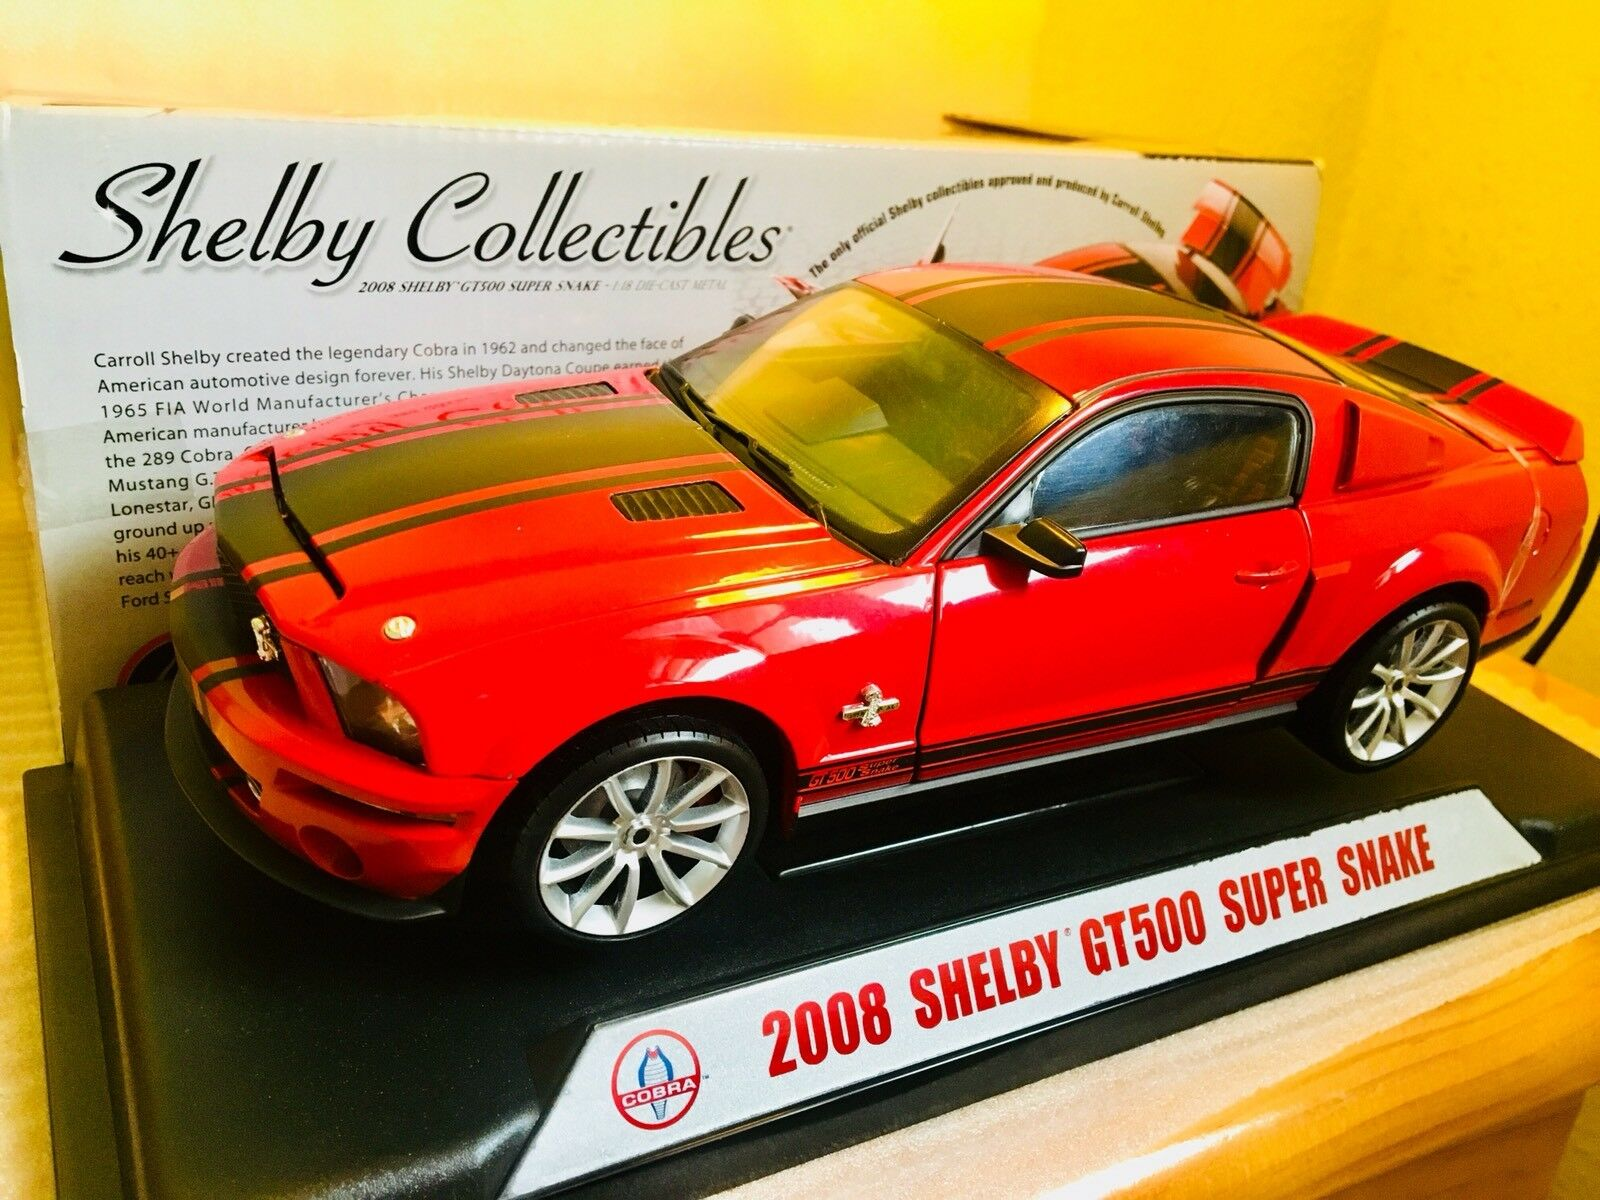 Shelby Shelby Shelby super snake gt500 2008 shelby collectibles 1,18 americano maqueta coche ebe3af